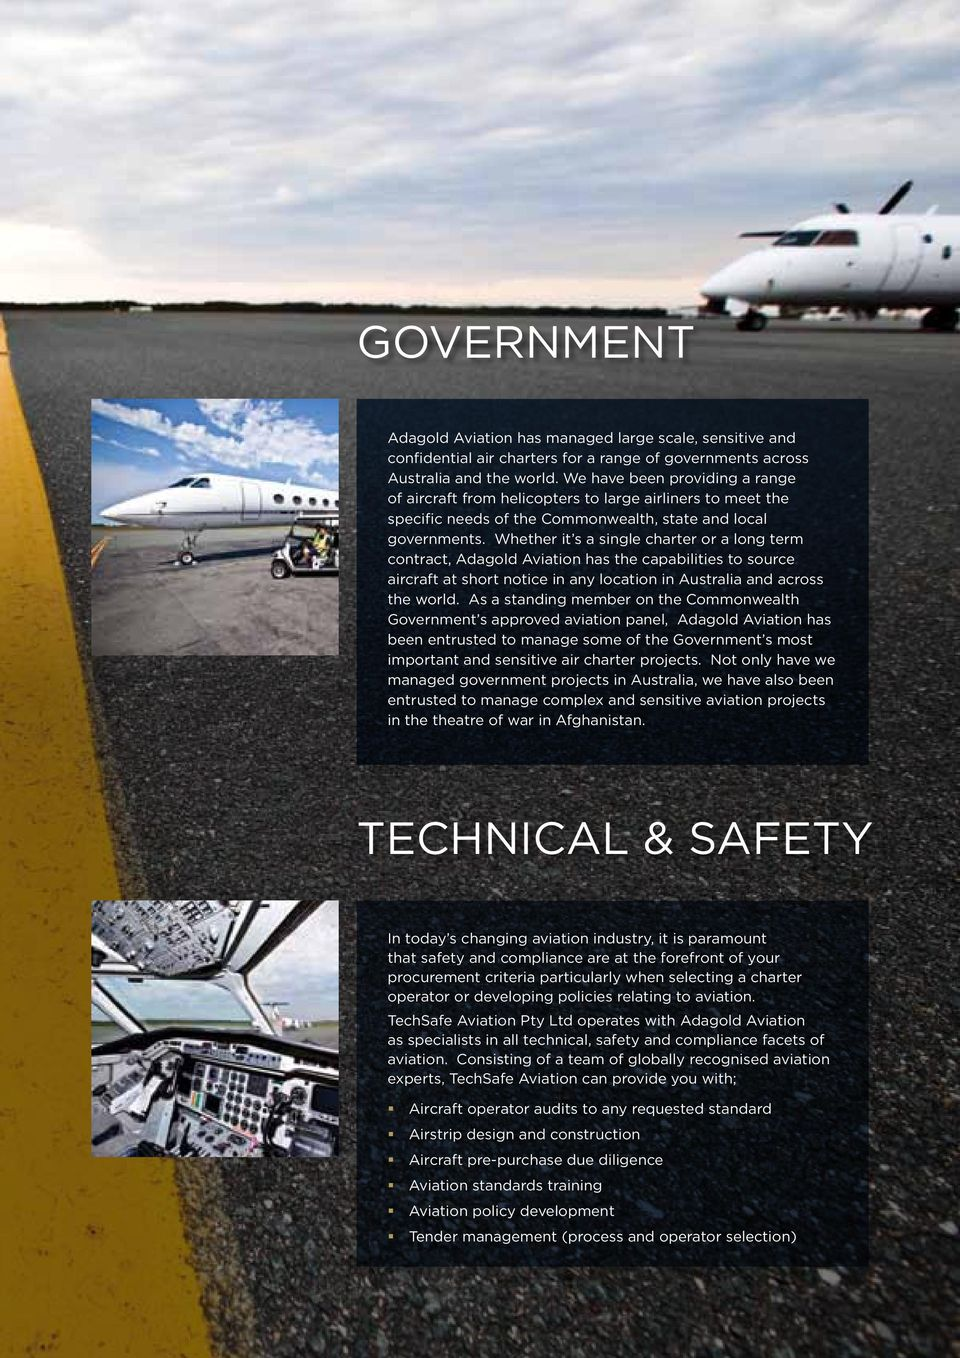 Whether it s a single charter or a long term contract, Adagold Aviation has the capabilities to source aircraft at short notice in any location in Australia and across the world.